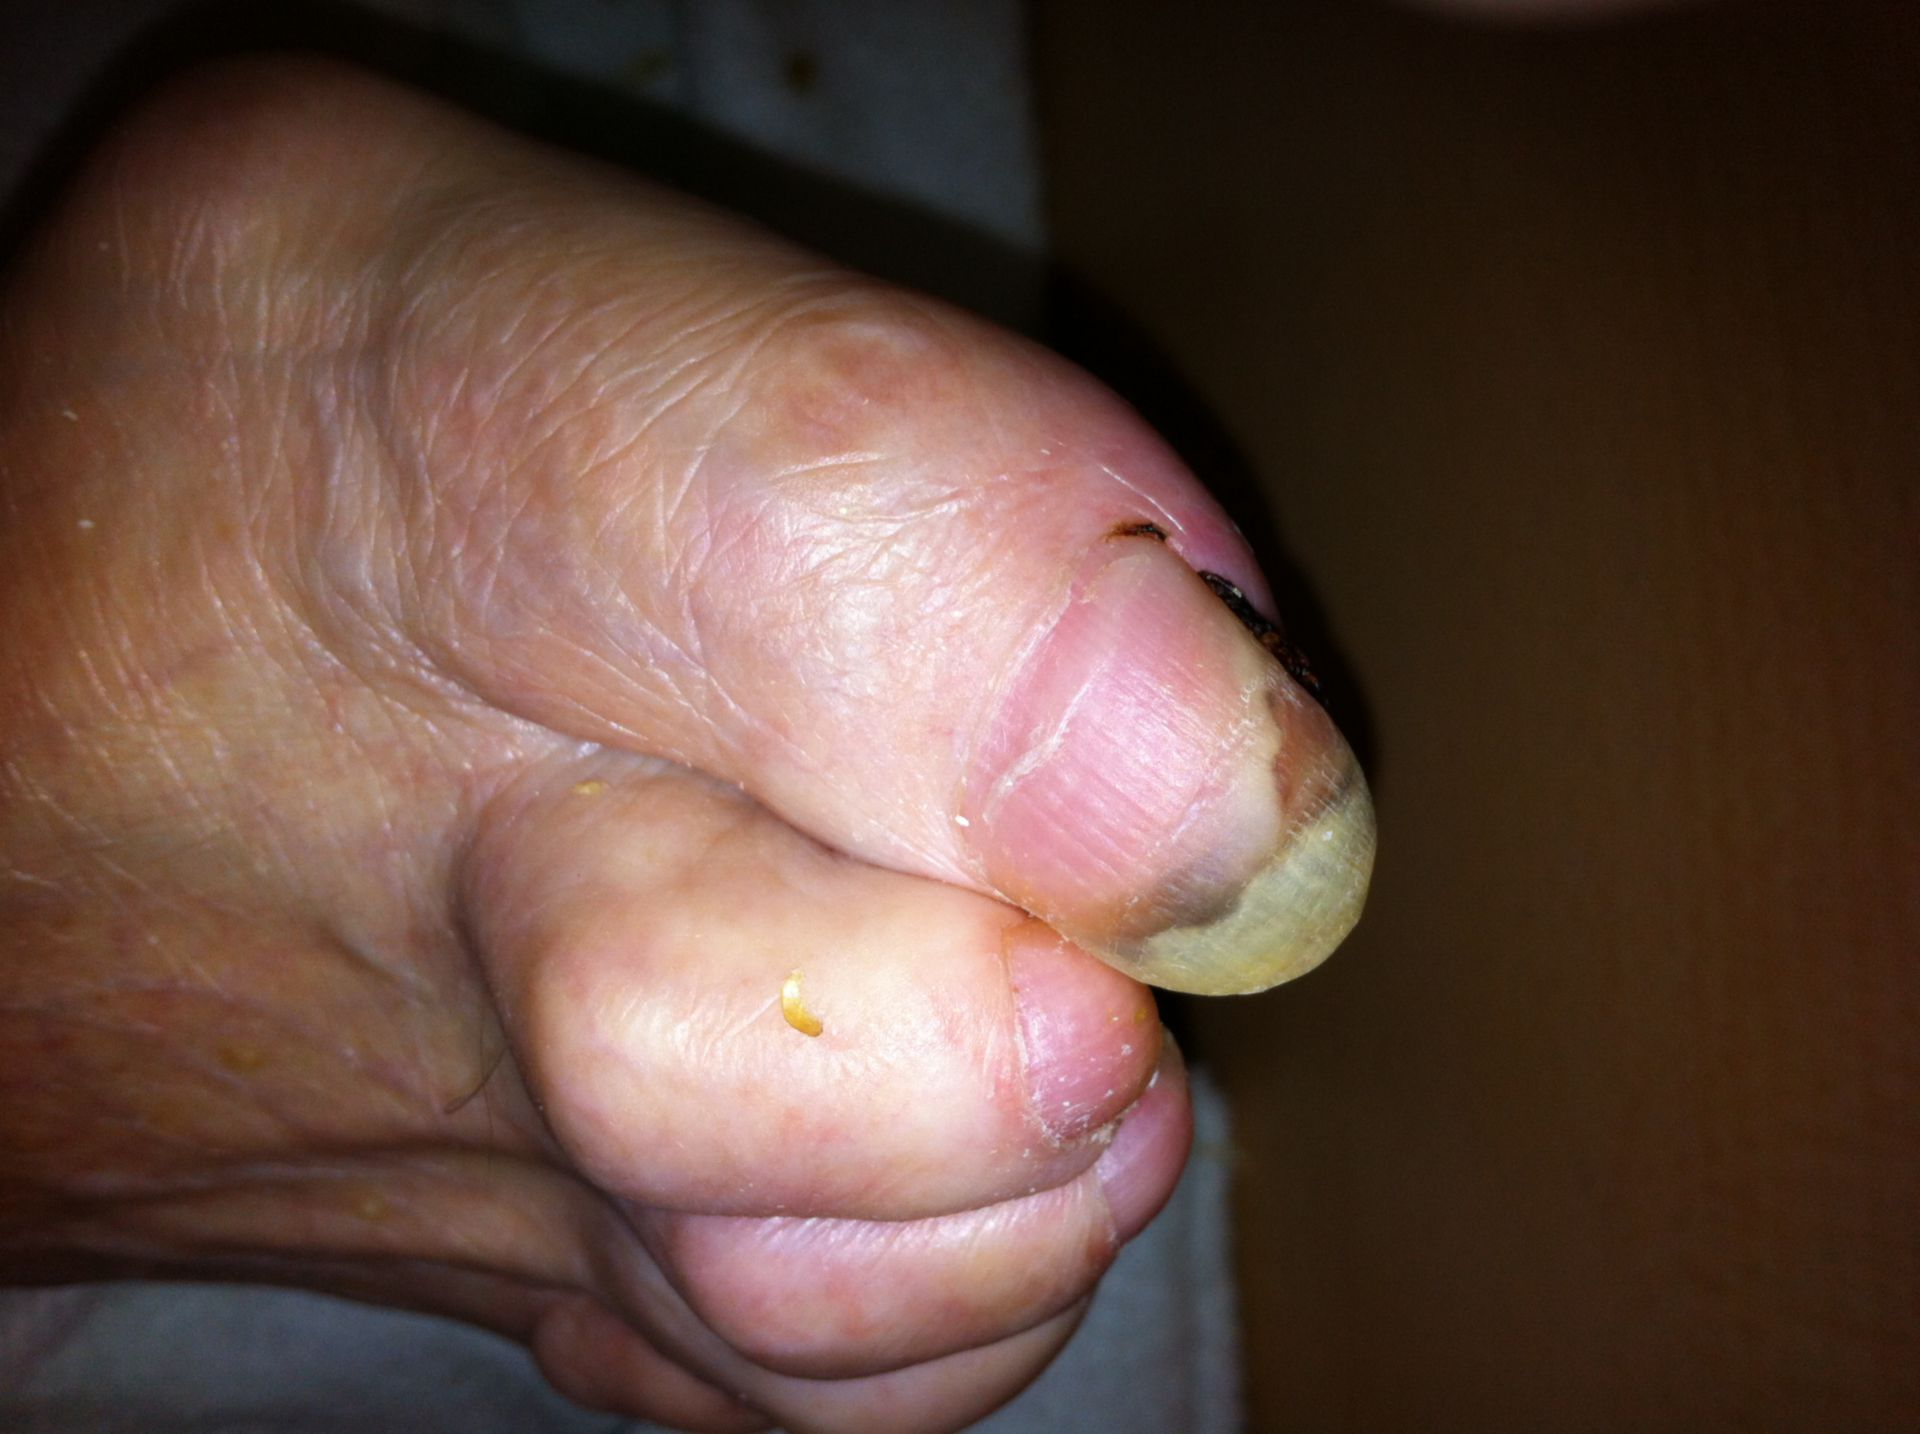 Unguis incarnatus in a patient with diabetic foot syndrome